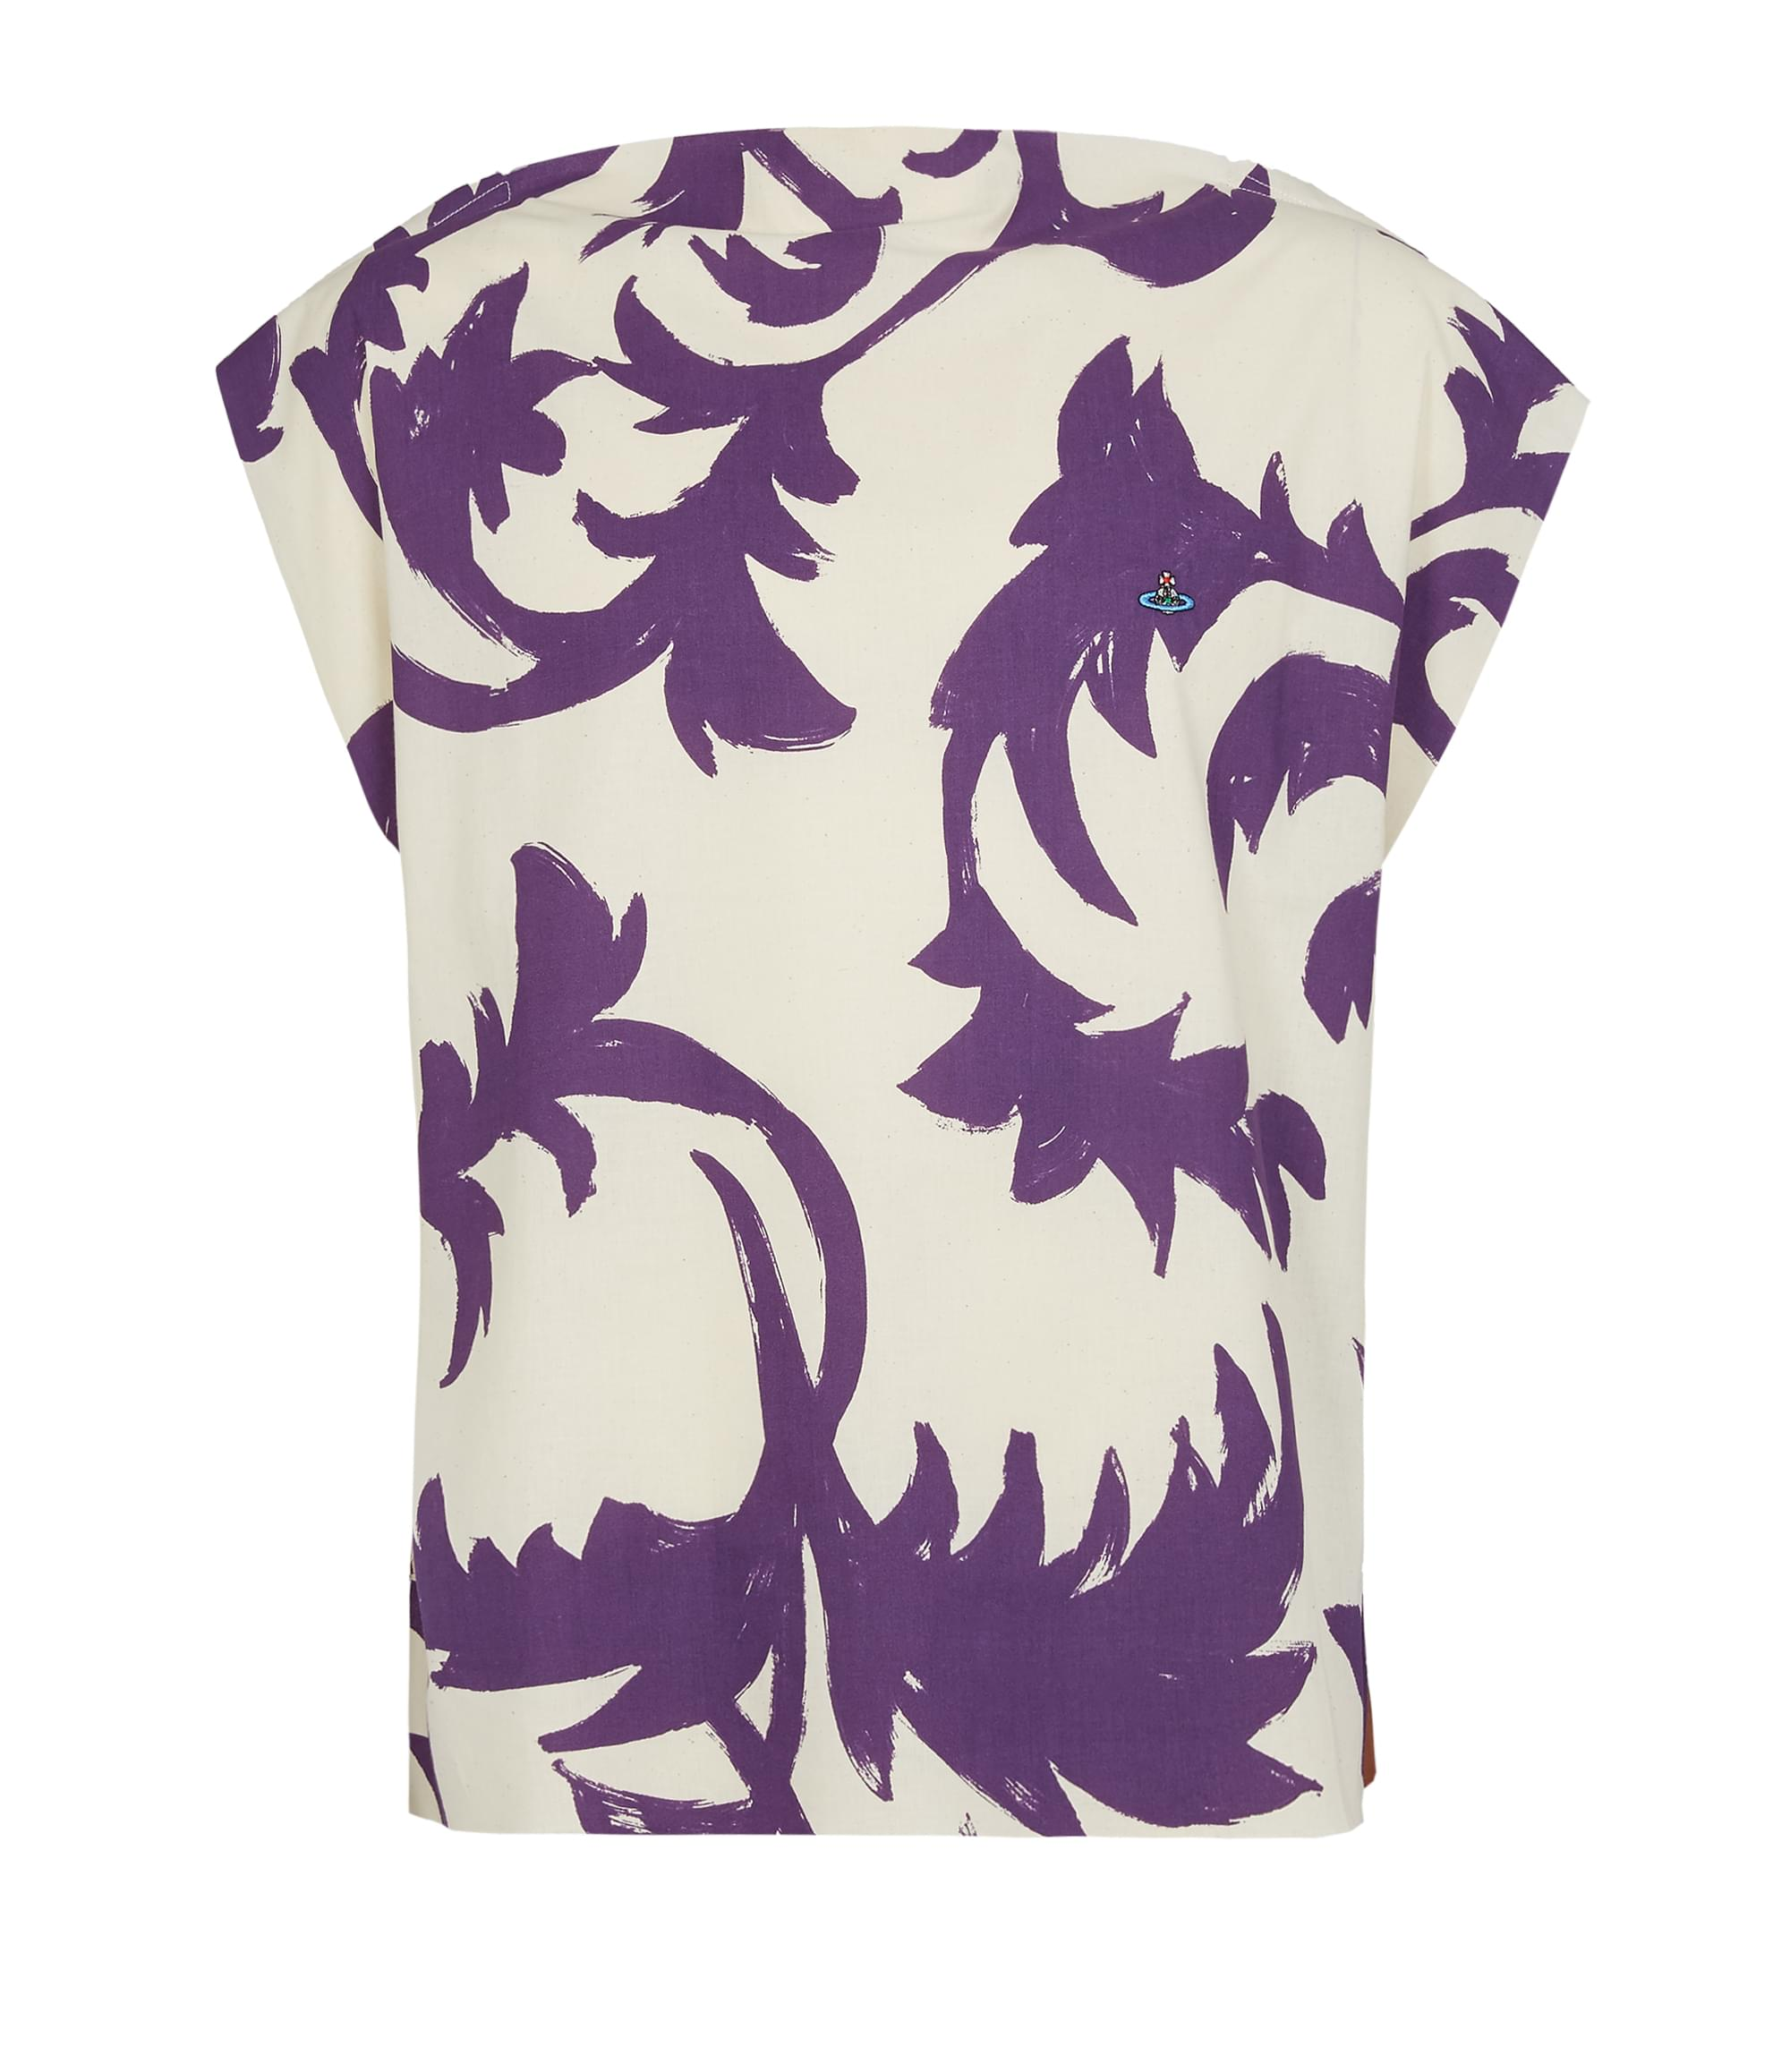 Vivienne Westwood Square T-Shirt Purple Leaves\/Tobacco Jersey